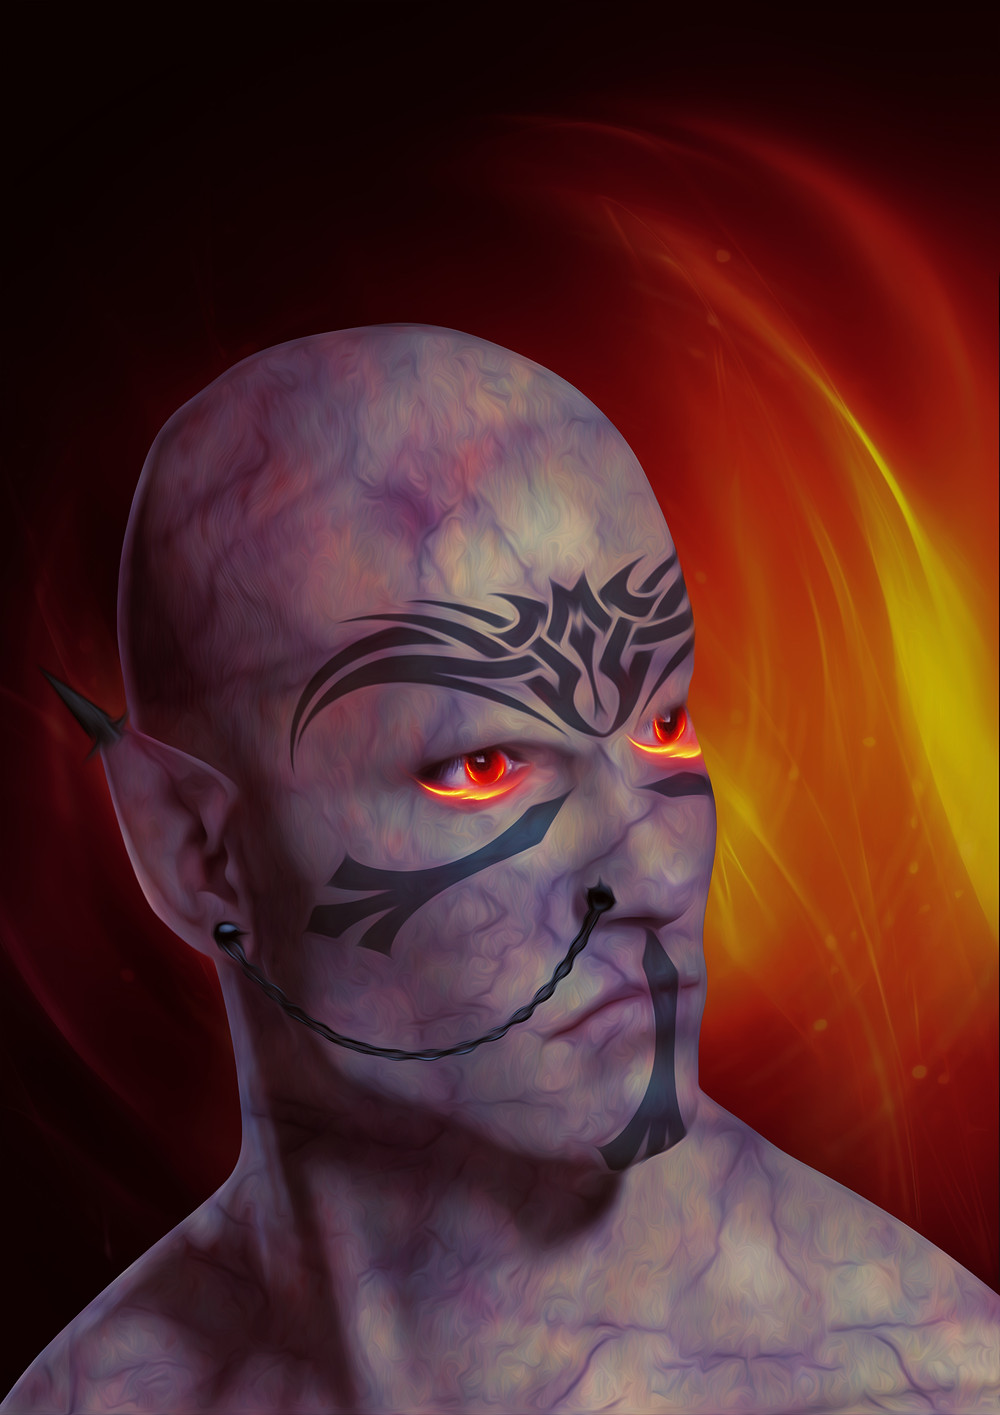 A Laniakeean who is in exile. Wants to invade Laniakeea and rule it for his own.